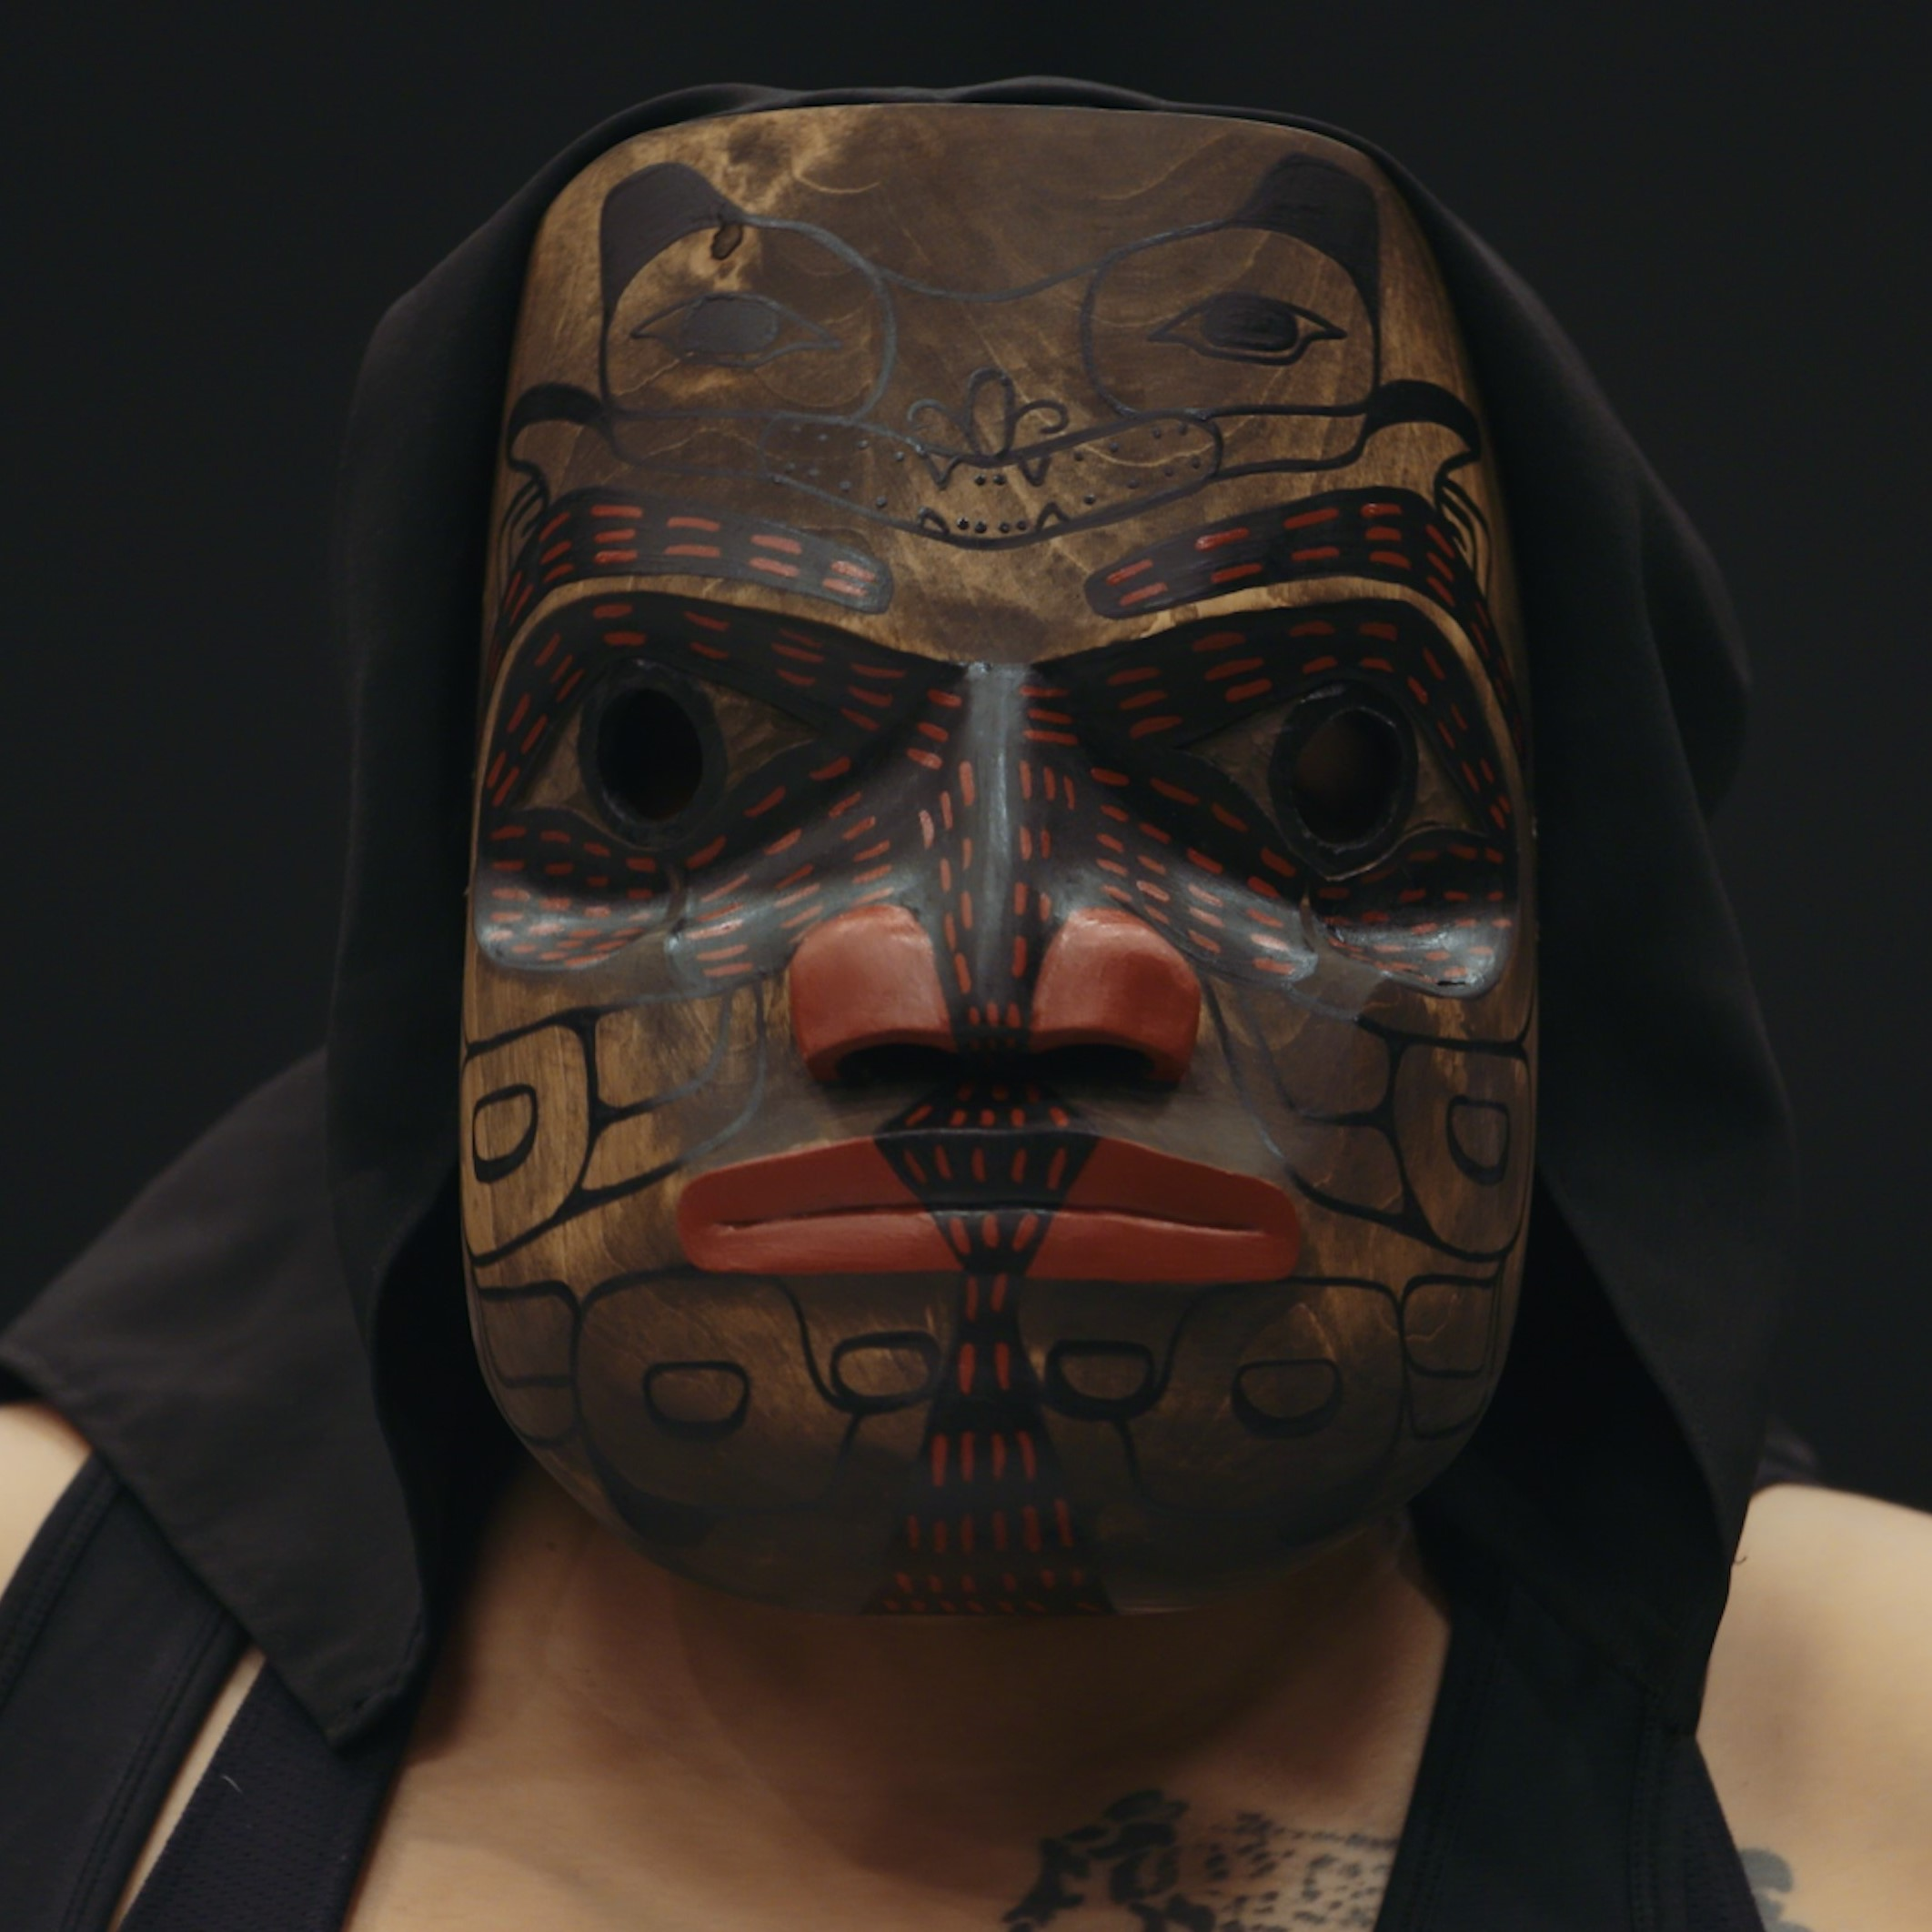 Mask by Mike Dangeli of the Nisga'a, Tlingit, Tsetsaut, and Tsimshian Nations